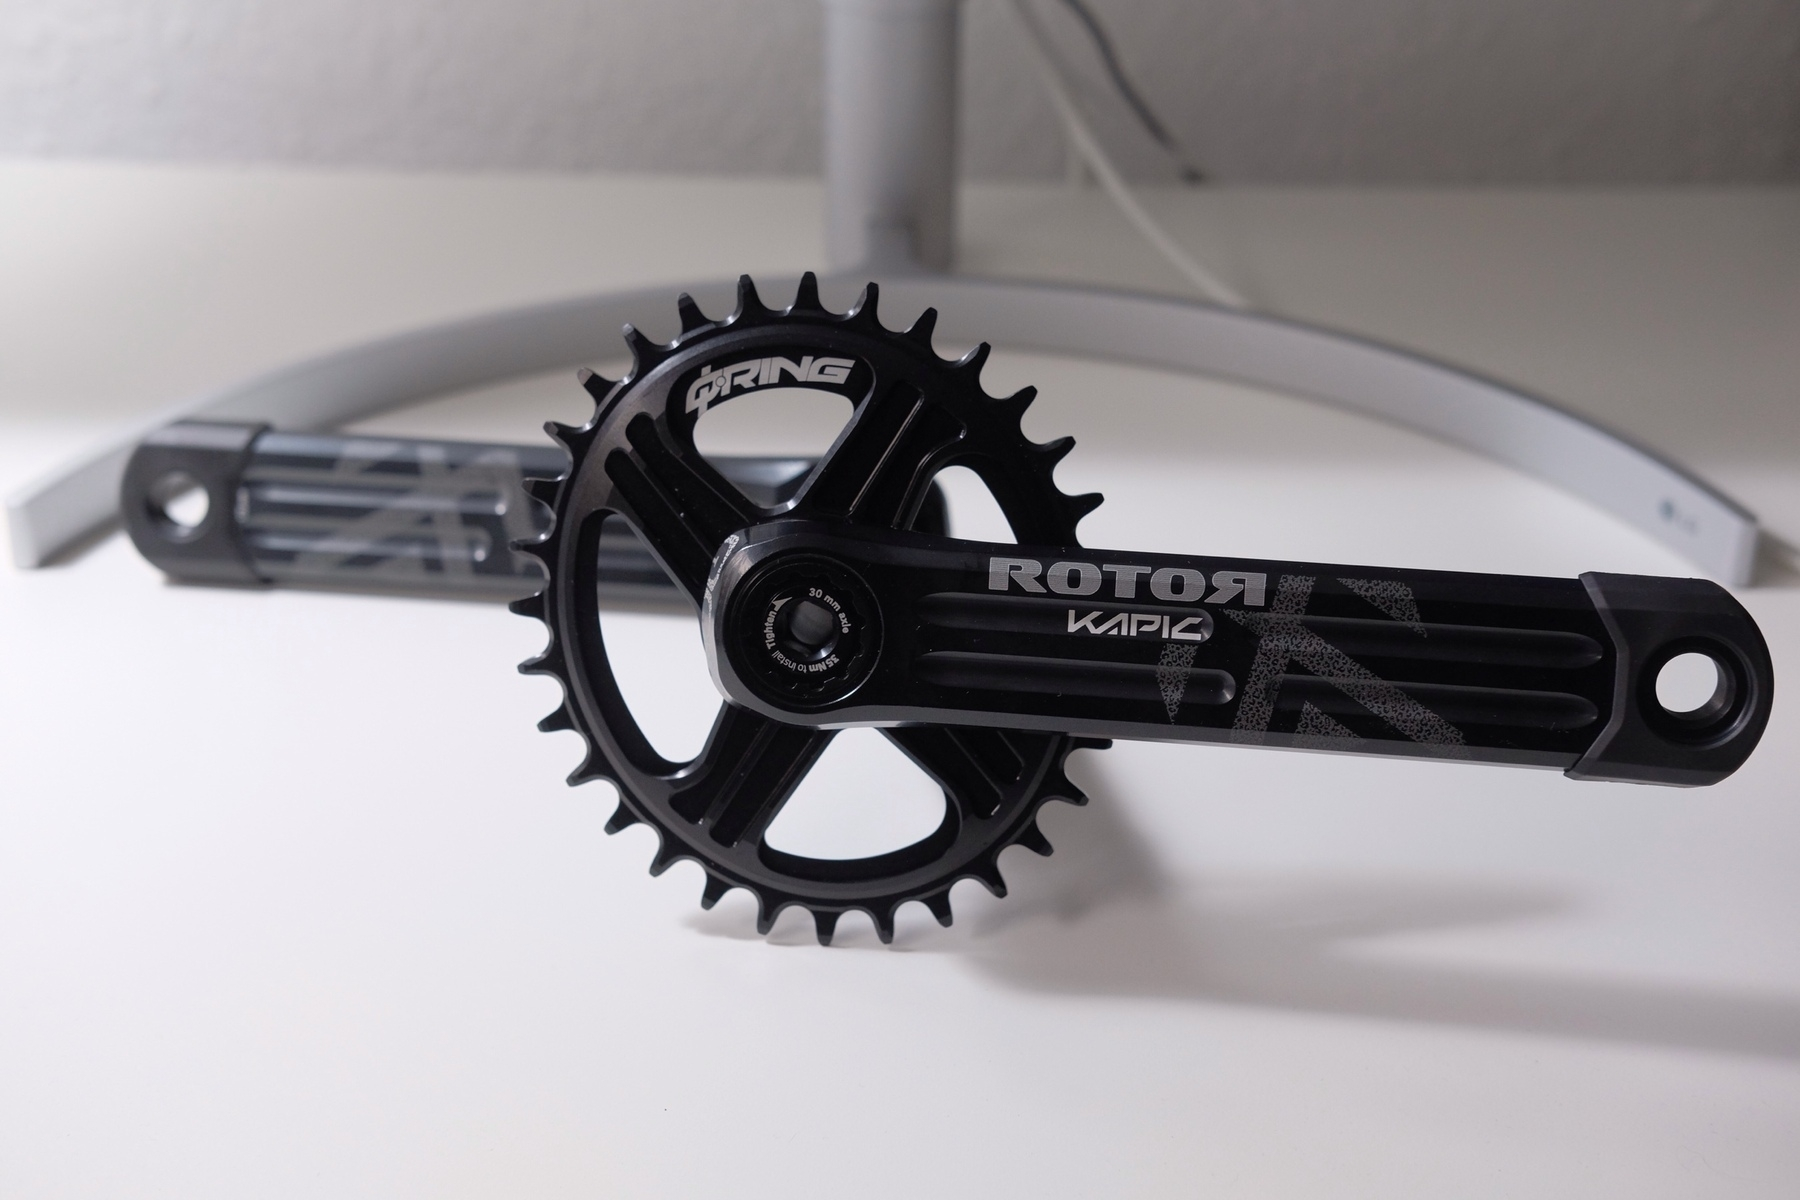 Aluminium single chainring crankset with an oval chainring on a white table in front of the foot of a monitor.